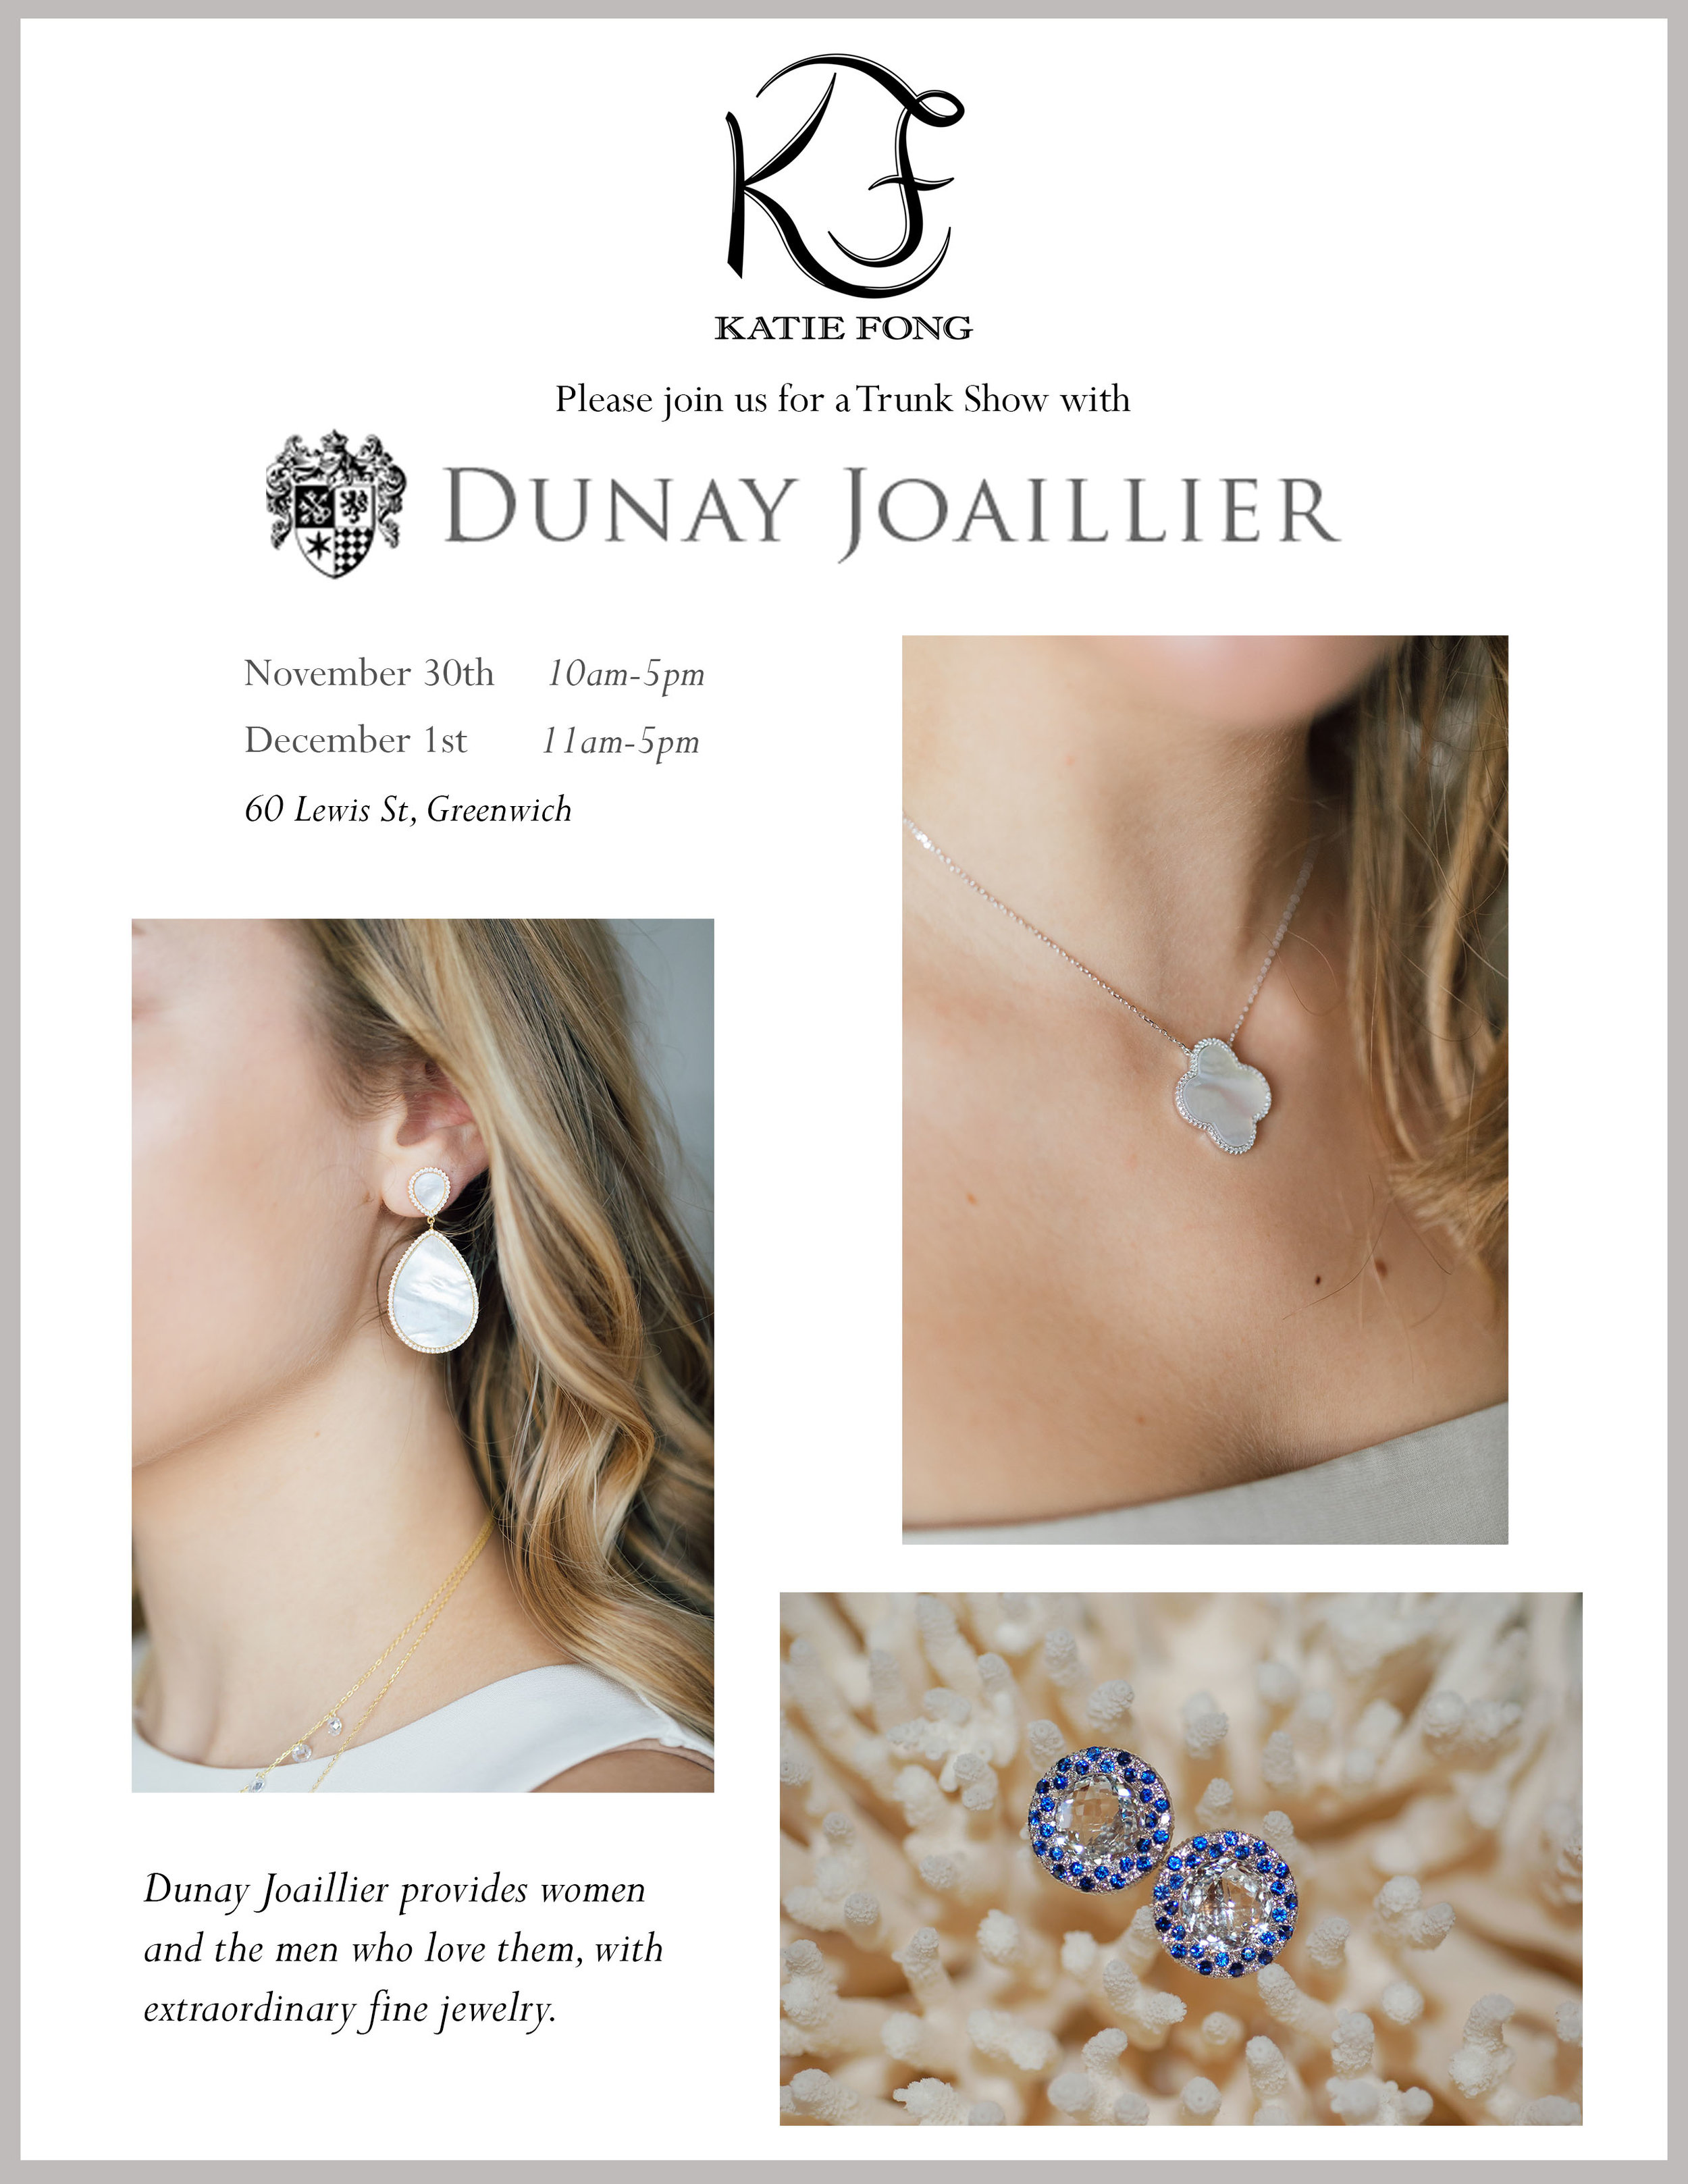 113018 ID Trunk Show Mailout.jpg